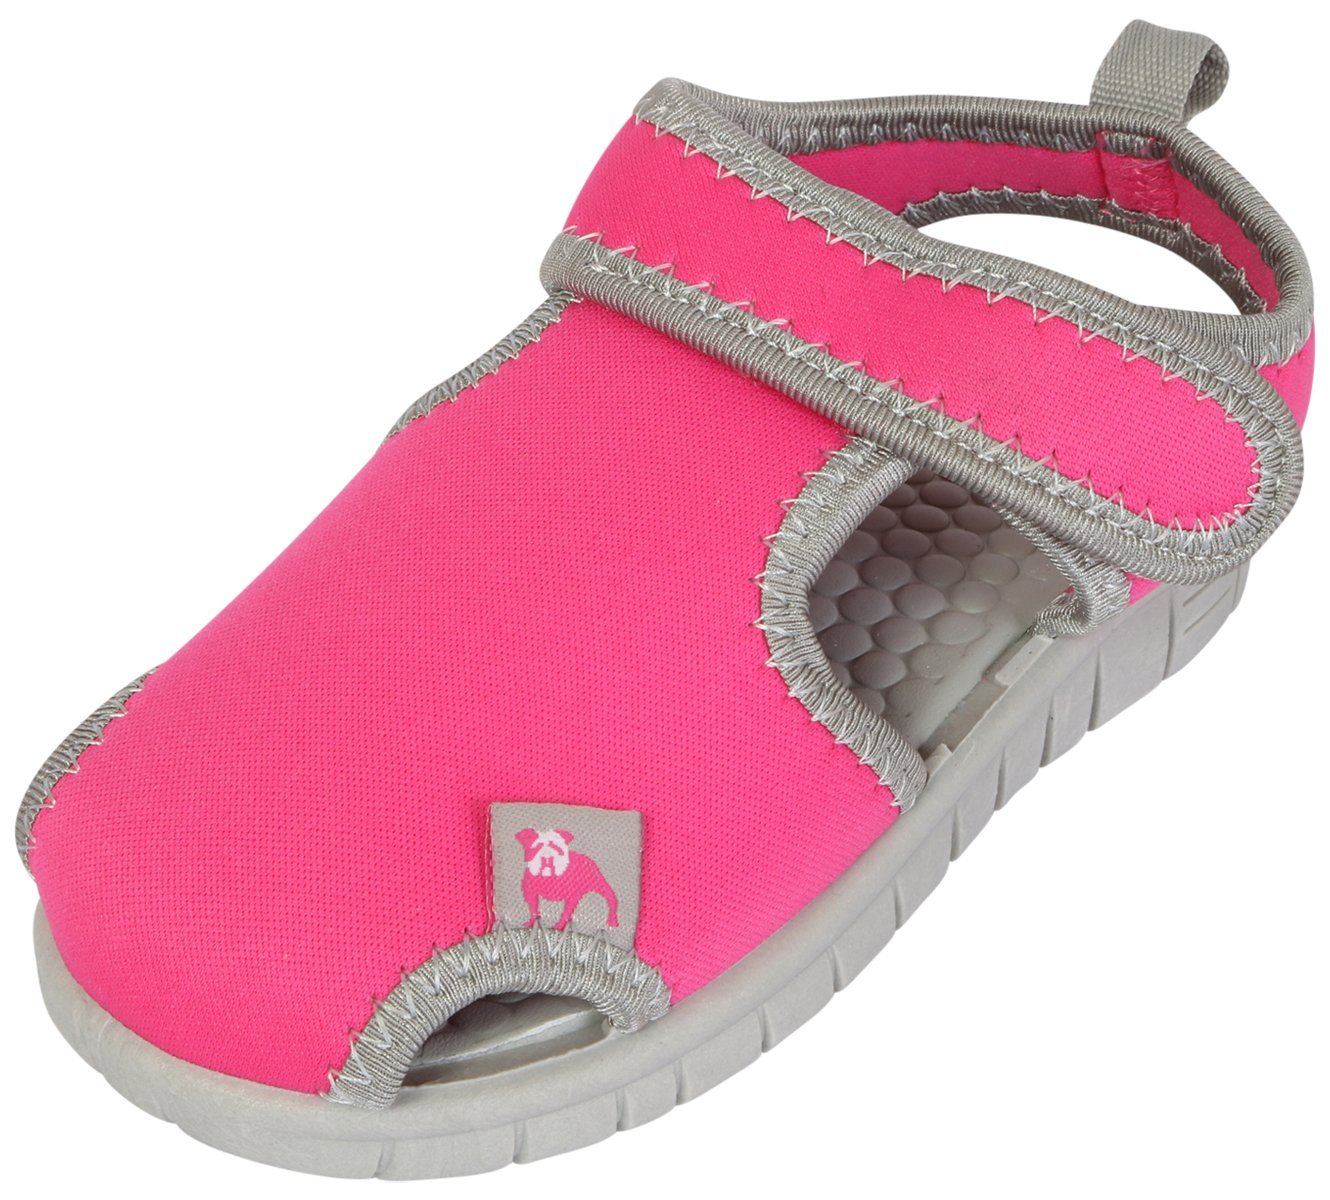 B.U.M. Equipment Girl's Water Shoes, Hot Pink/Grey, 6 M US Toddler'